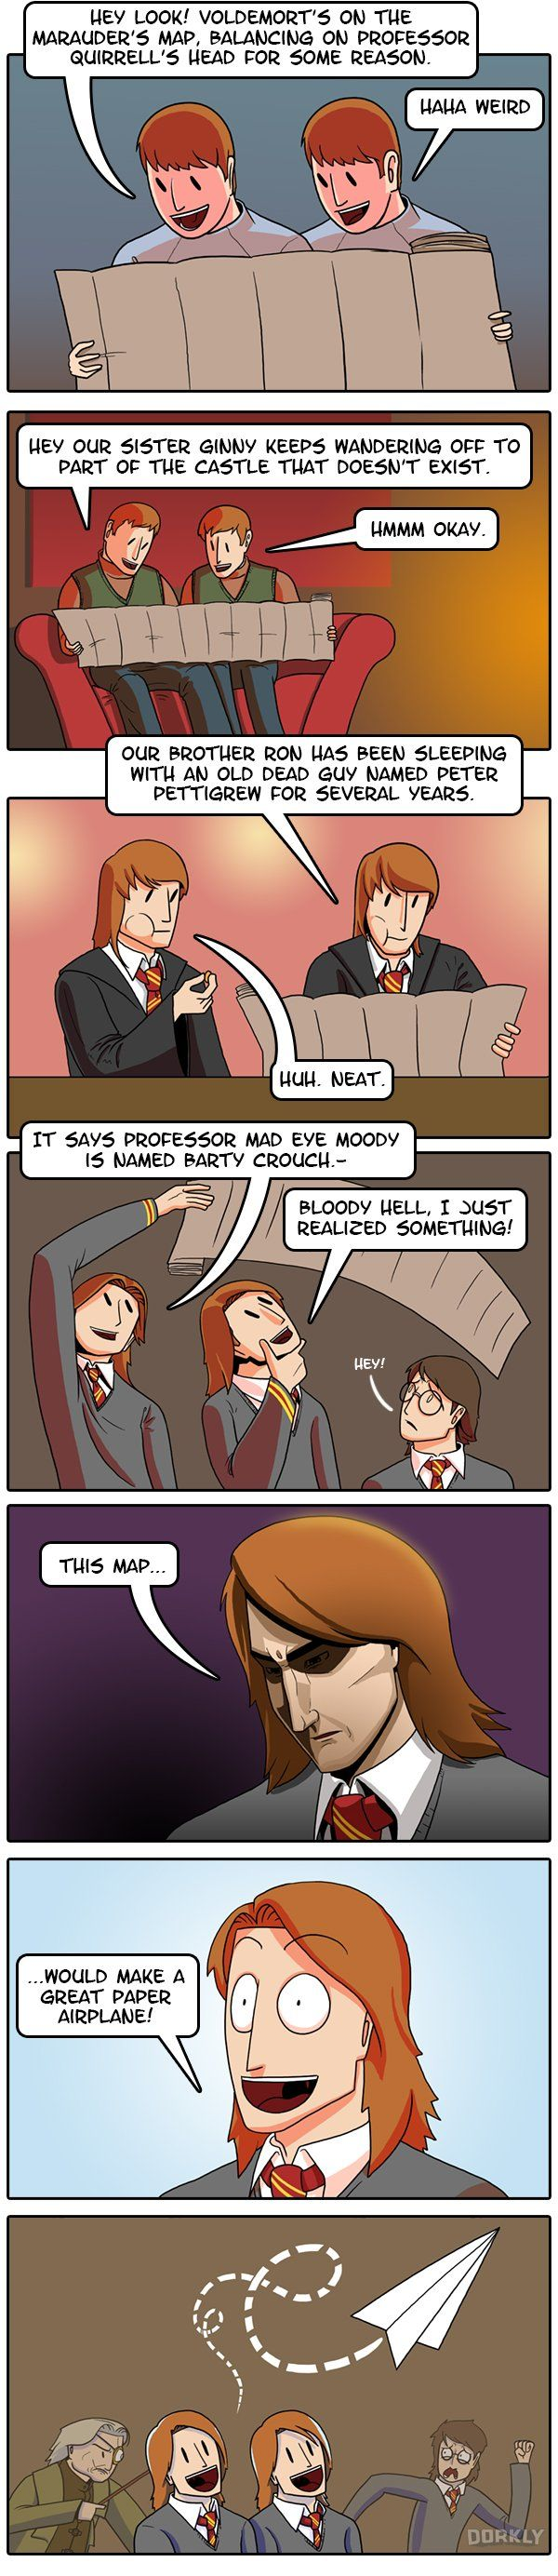 Why the Weasley twins are the dumbest characters in Harry Potter.